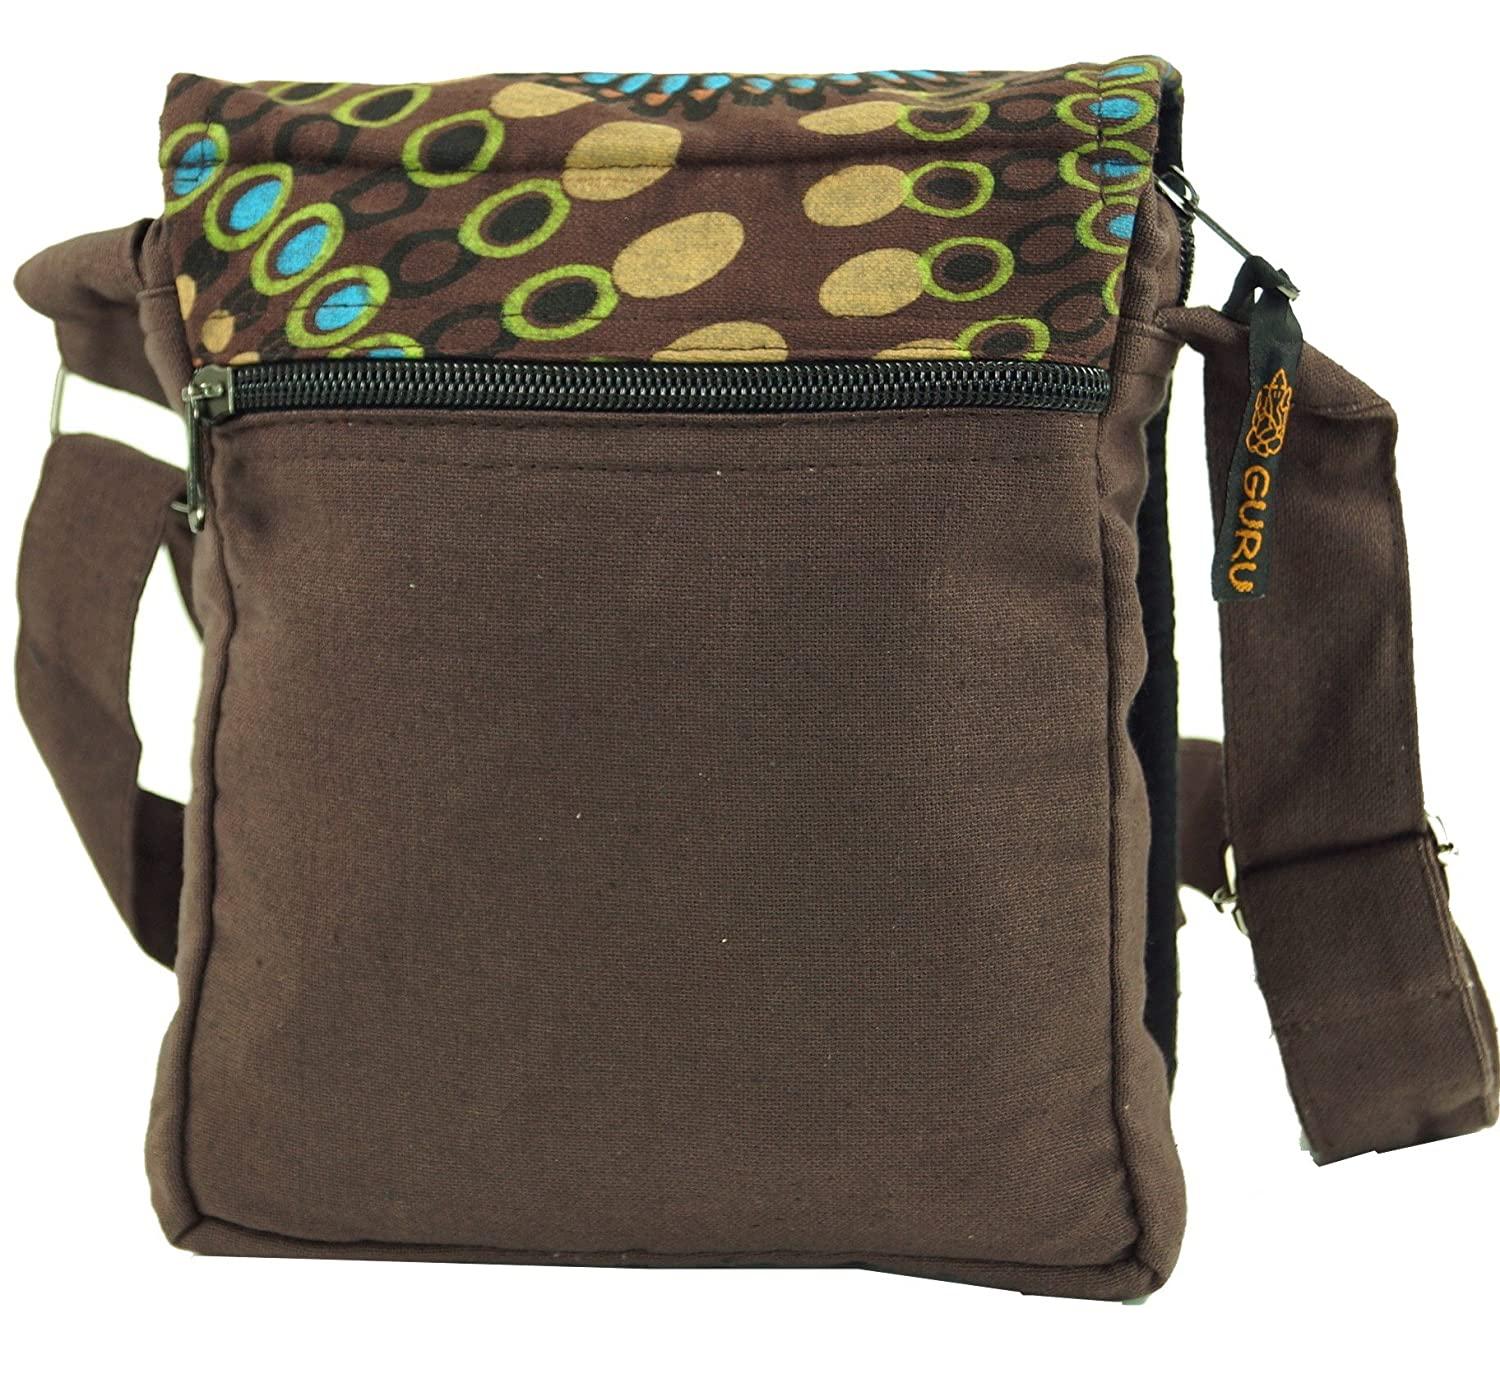 Guru Shop Small Shoulder Bag, Hippie Bag, Goa Bag Brown